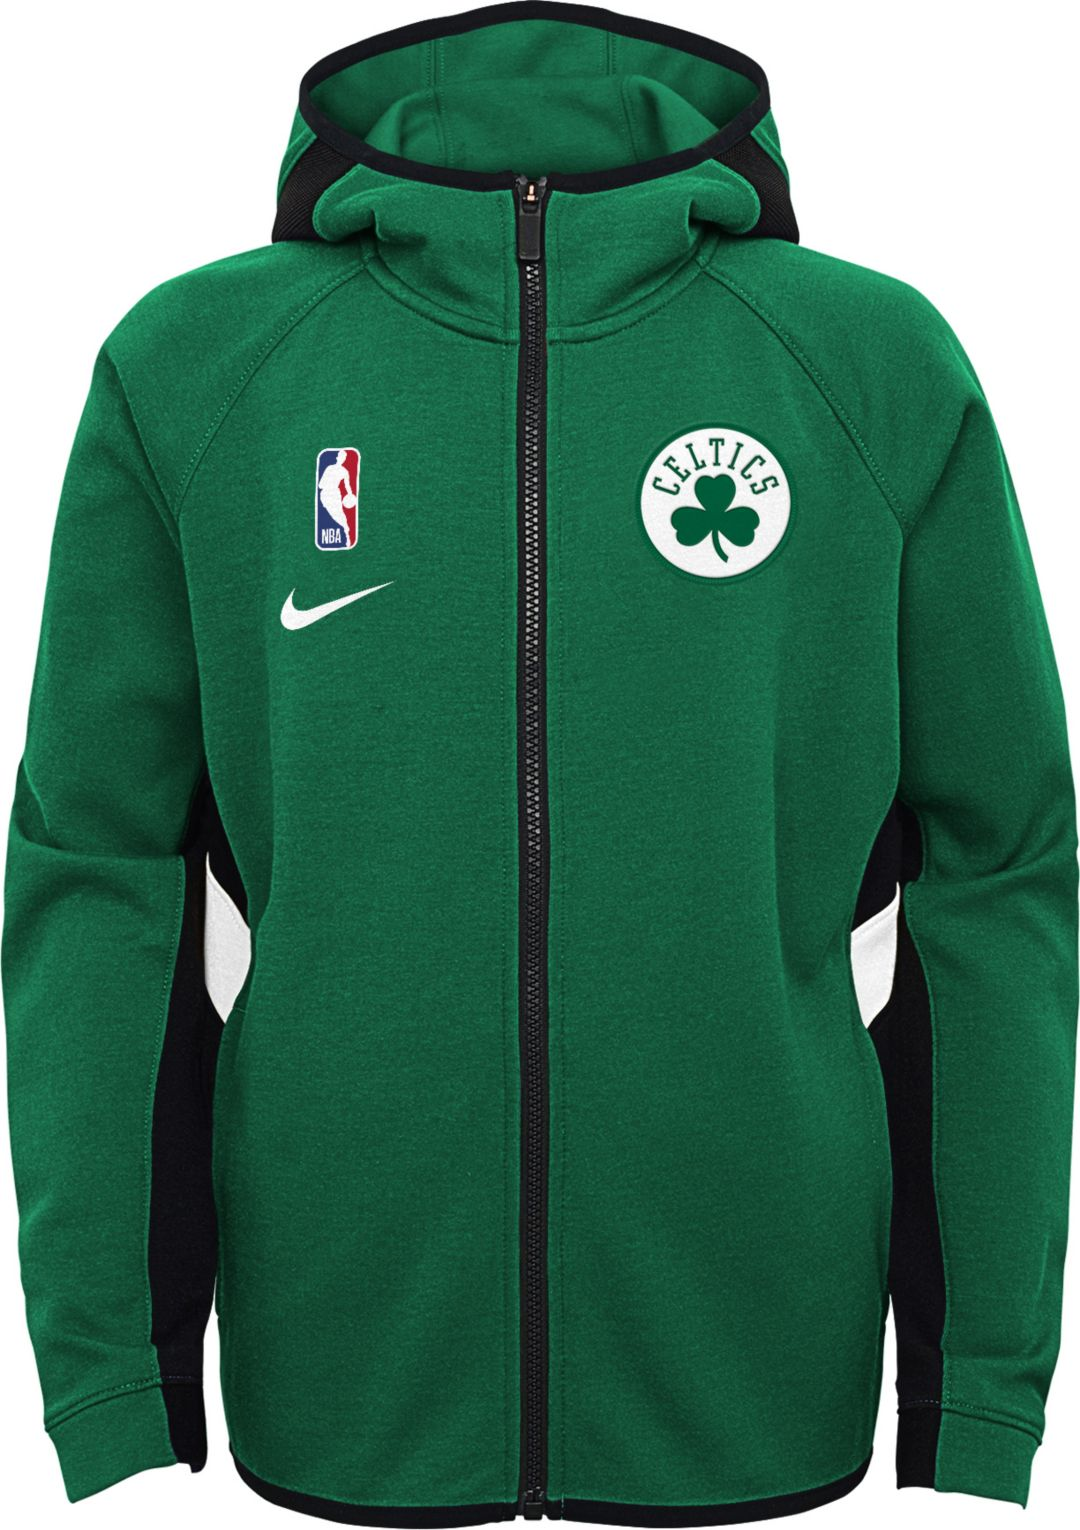 meet good quality 100% top quality Nike Youth Boston Celtics On-Court Therma Flex Showtime Full-Zip Hoodie